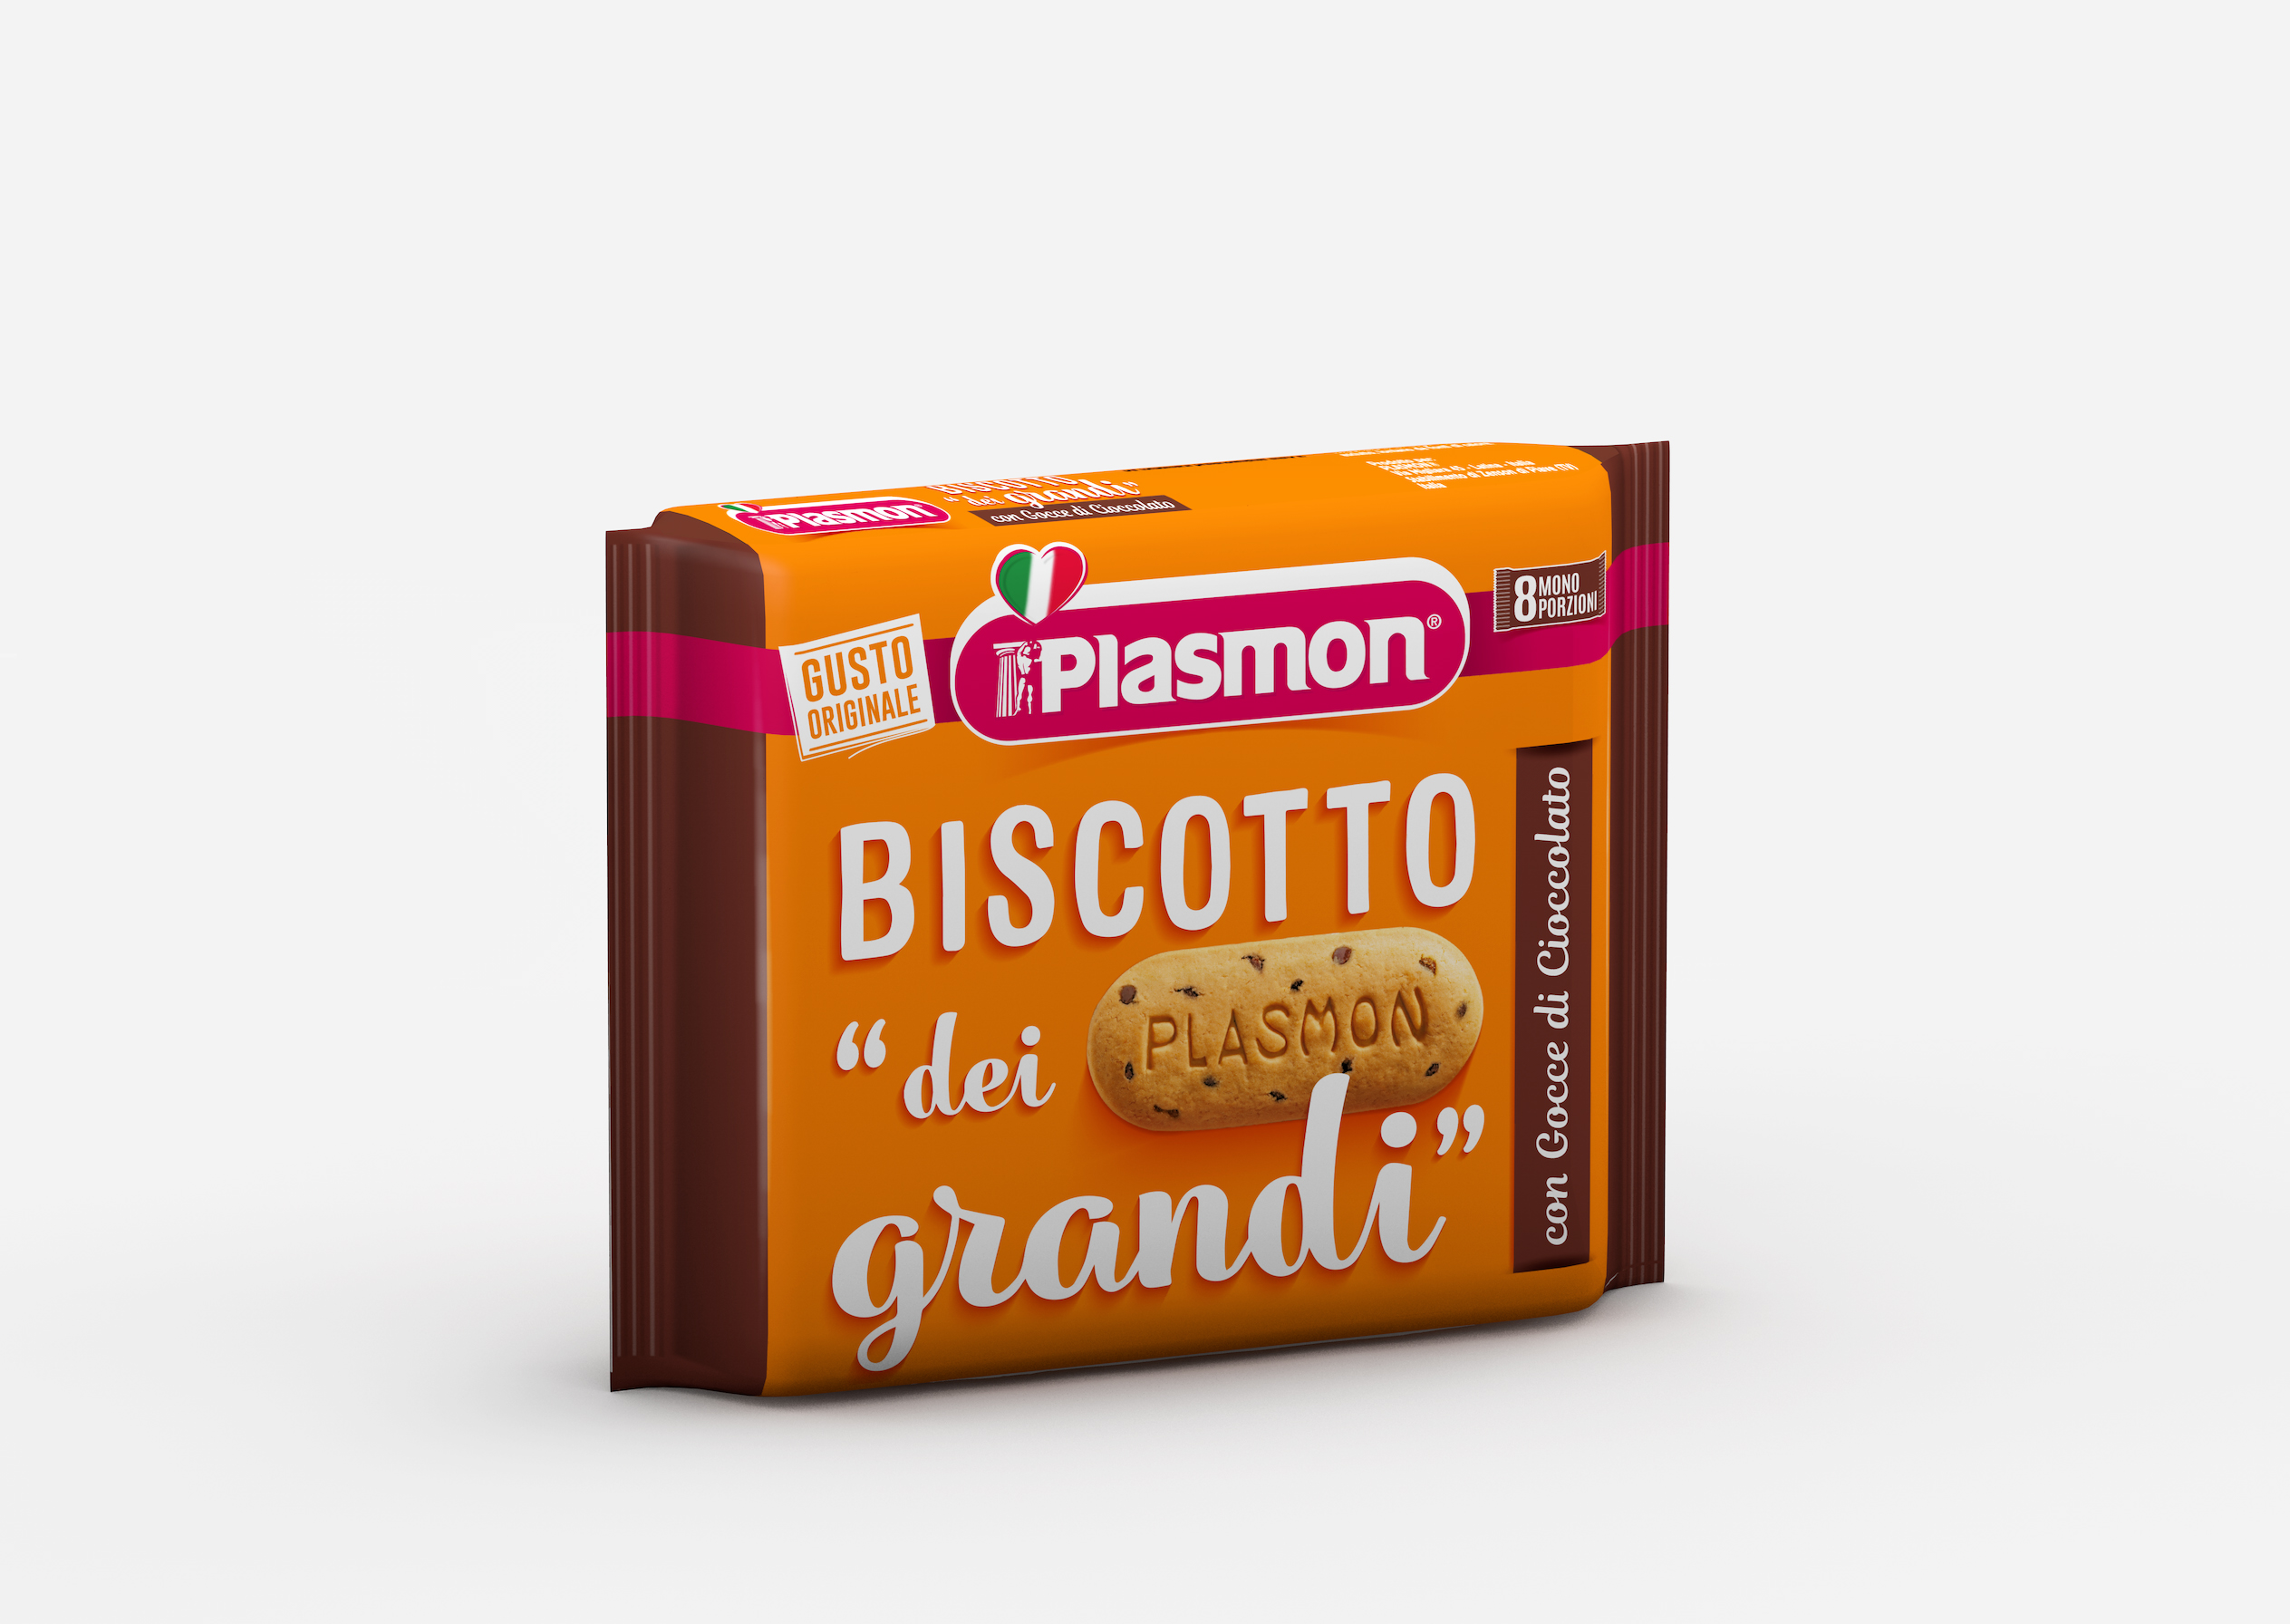 Plasmon Biscuit for Grown ups with chocolate chips